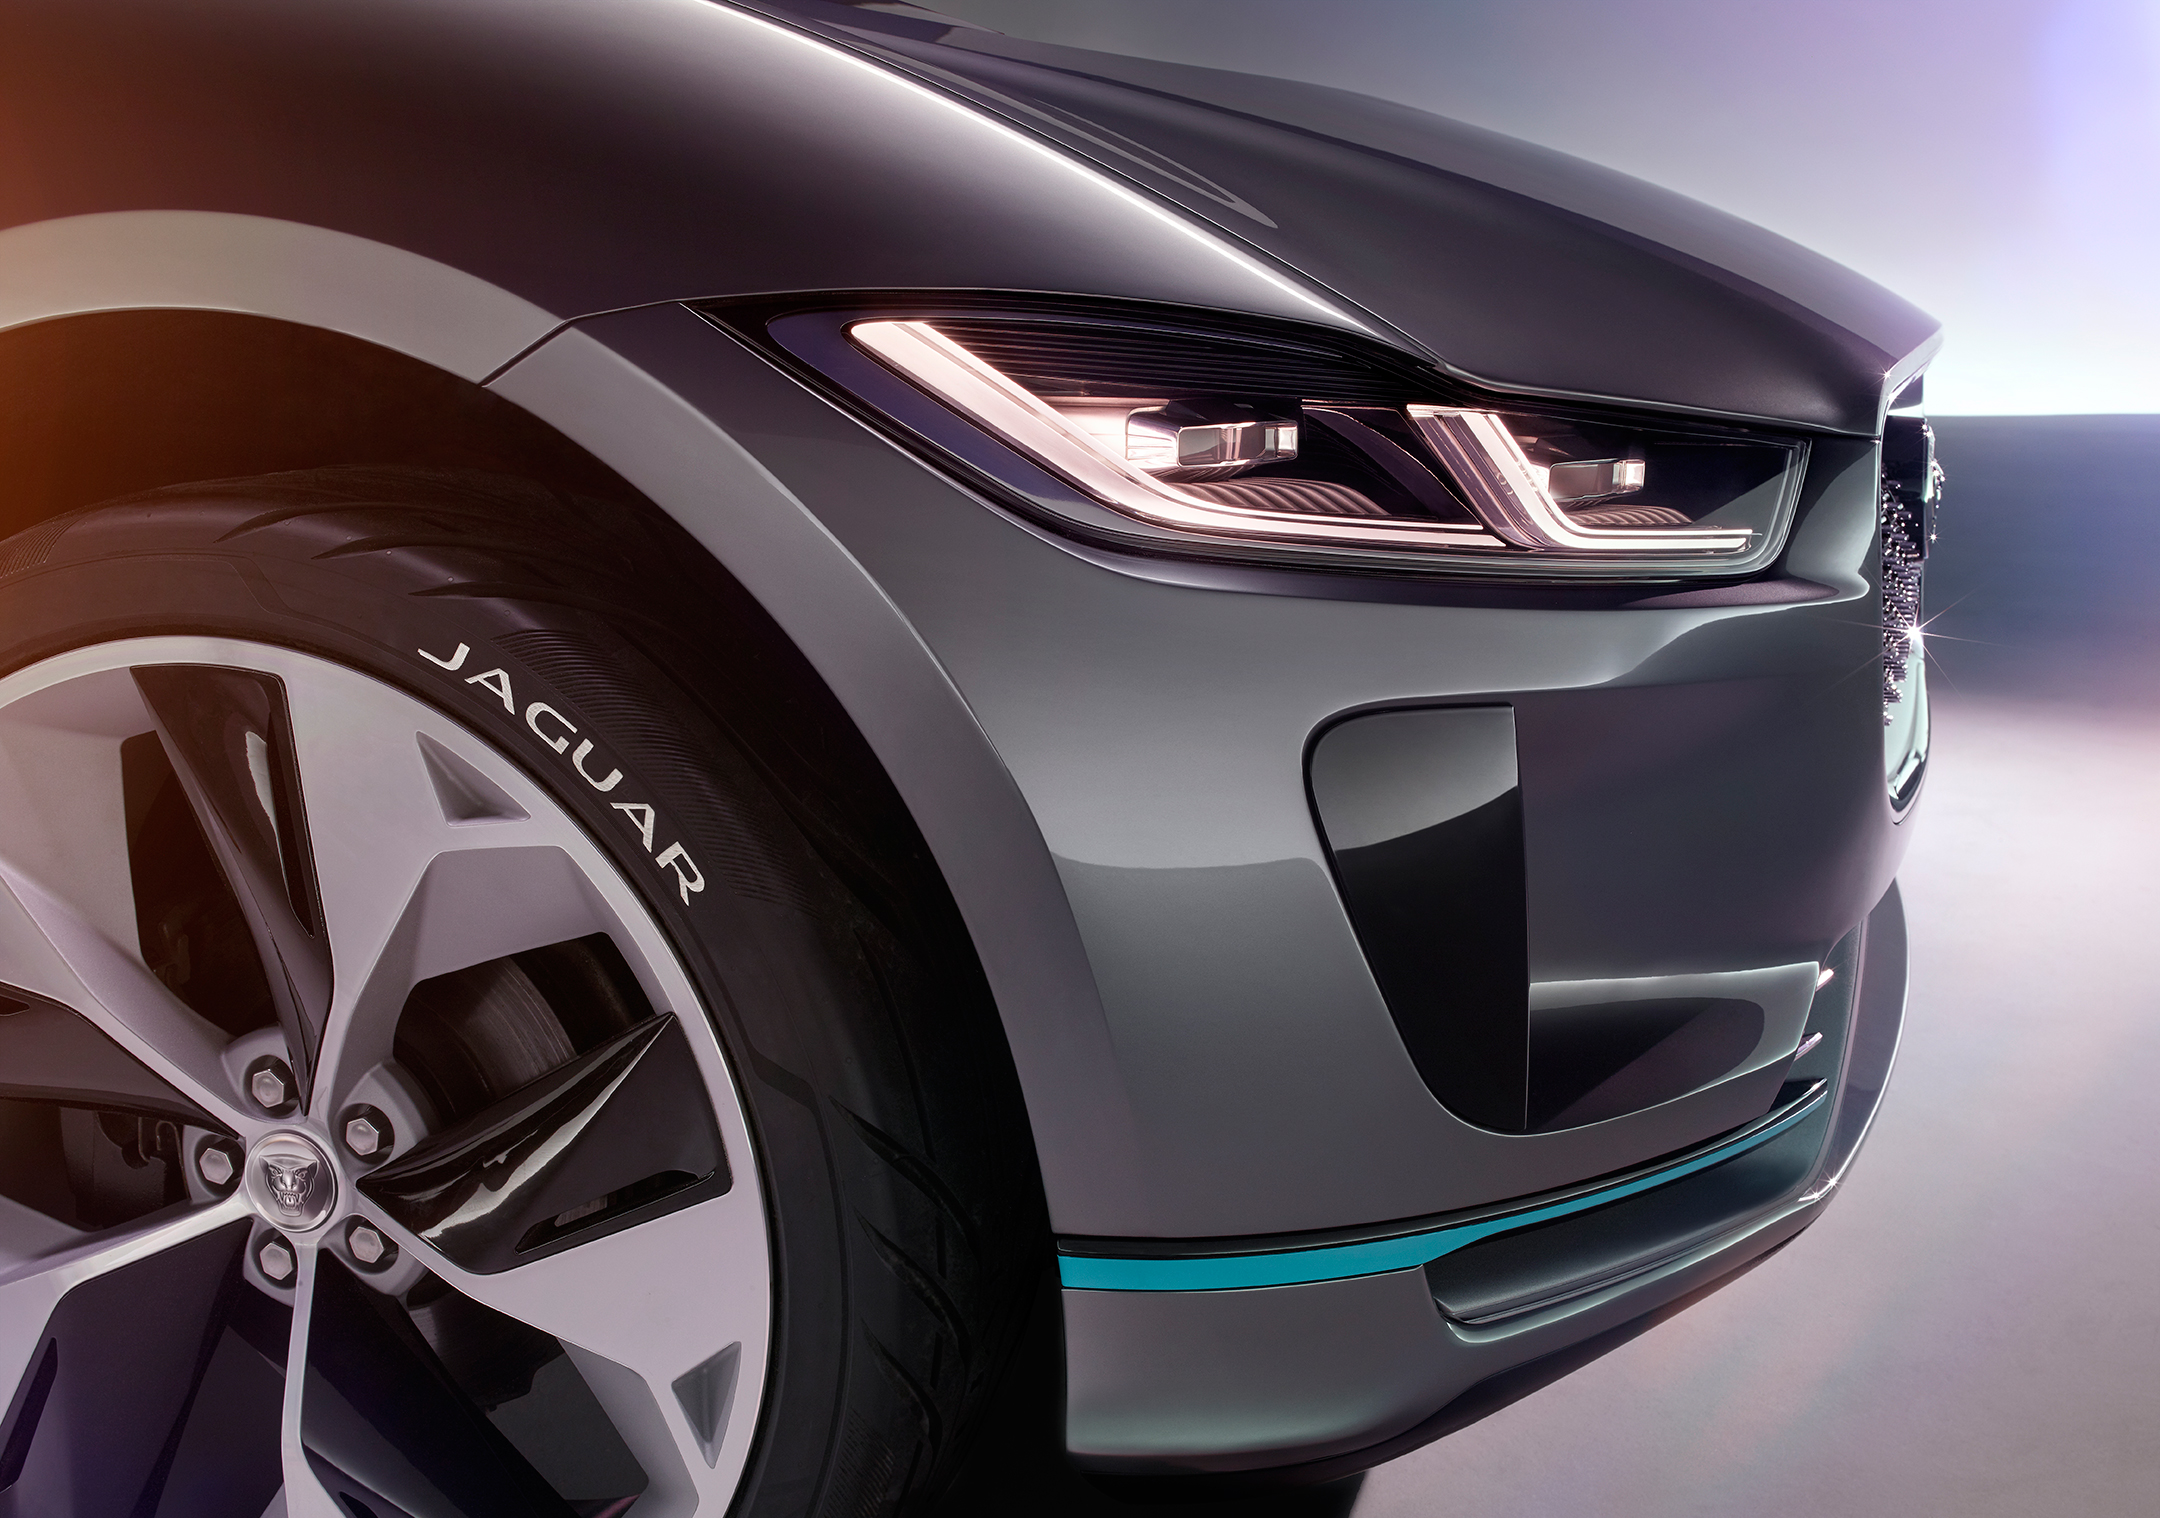 Jaguar I-PACE Concept - 2016 - front light